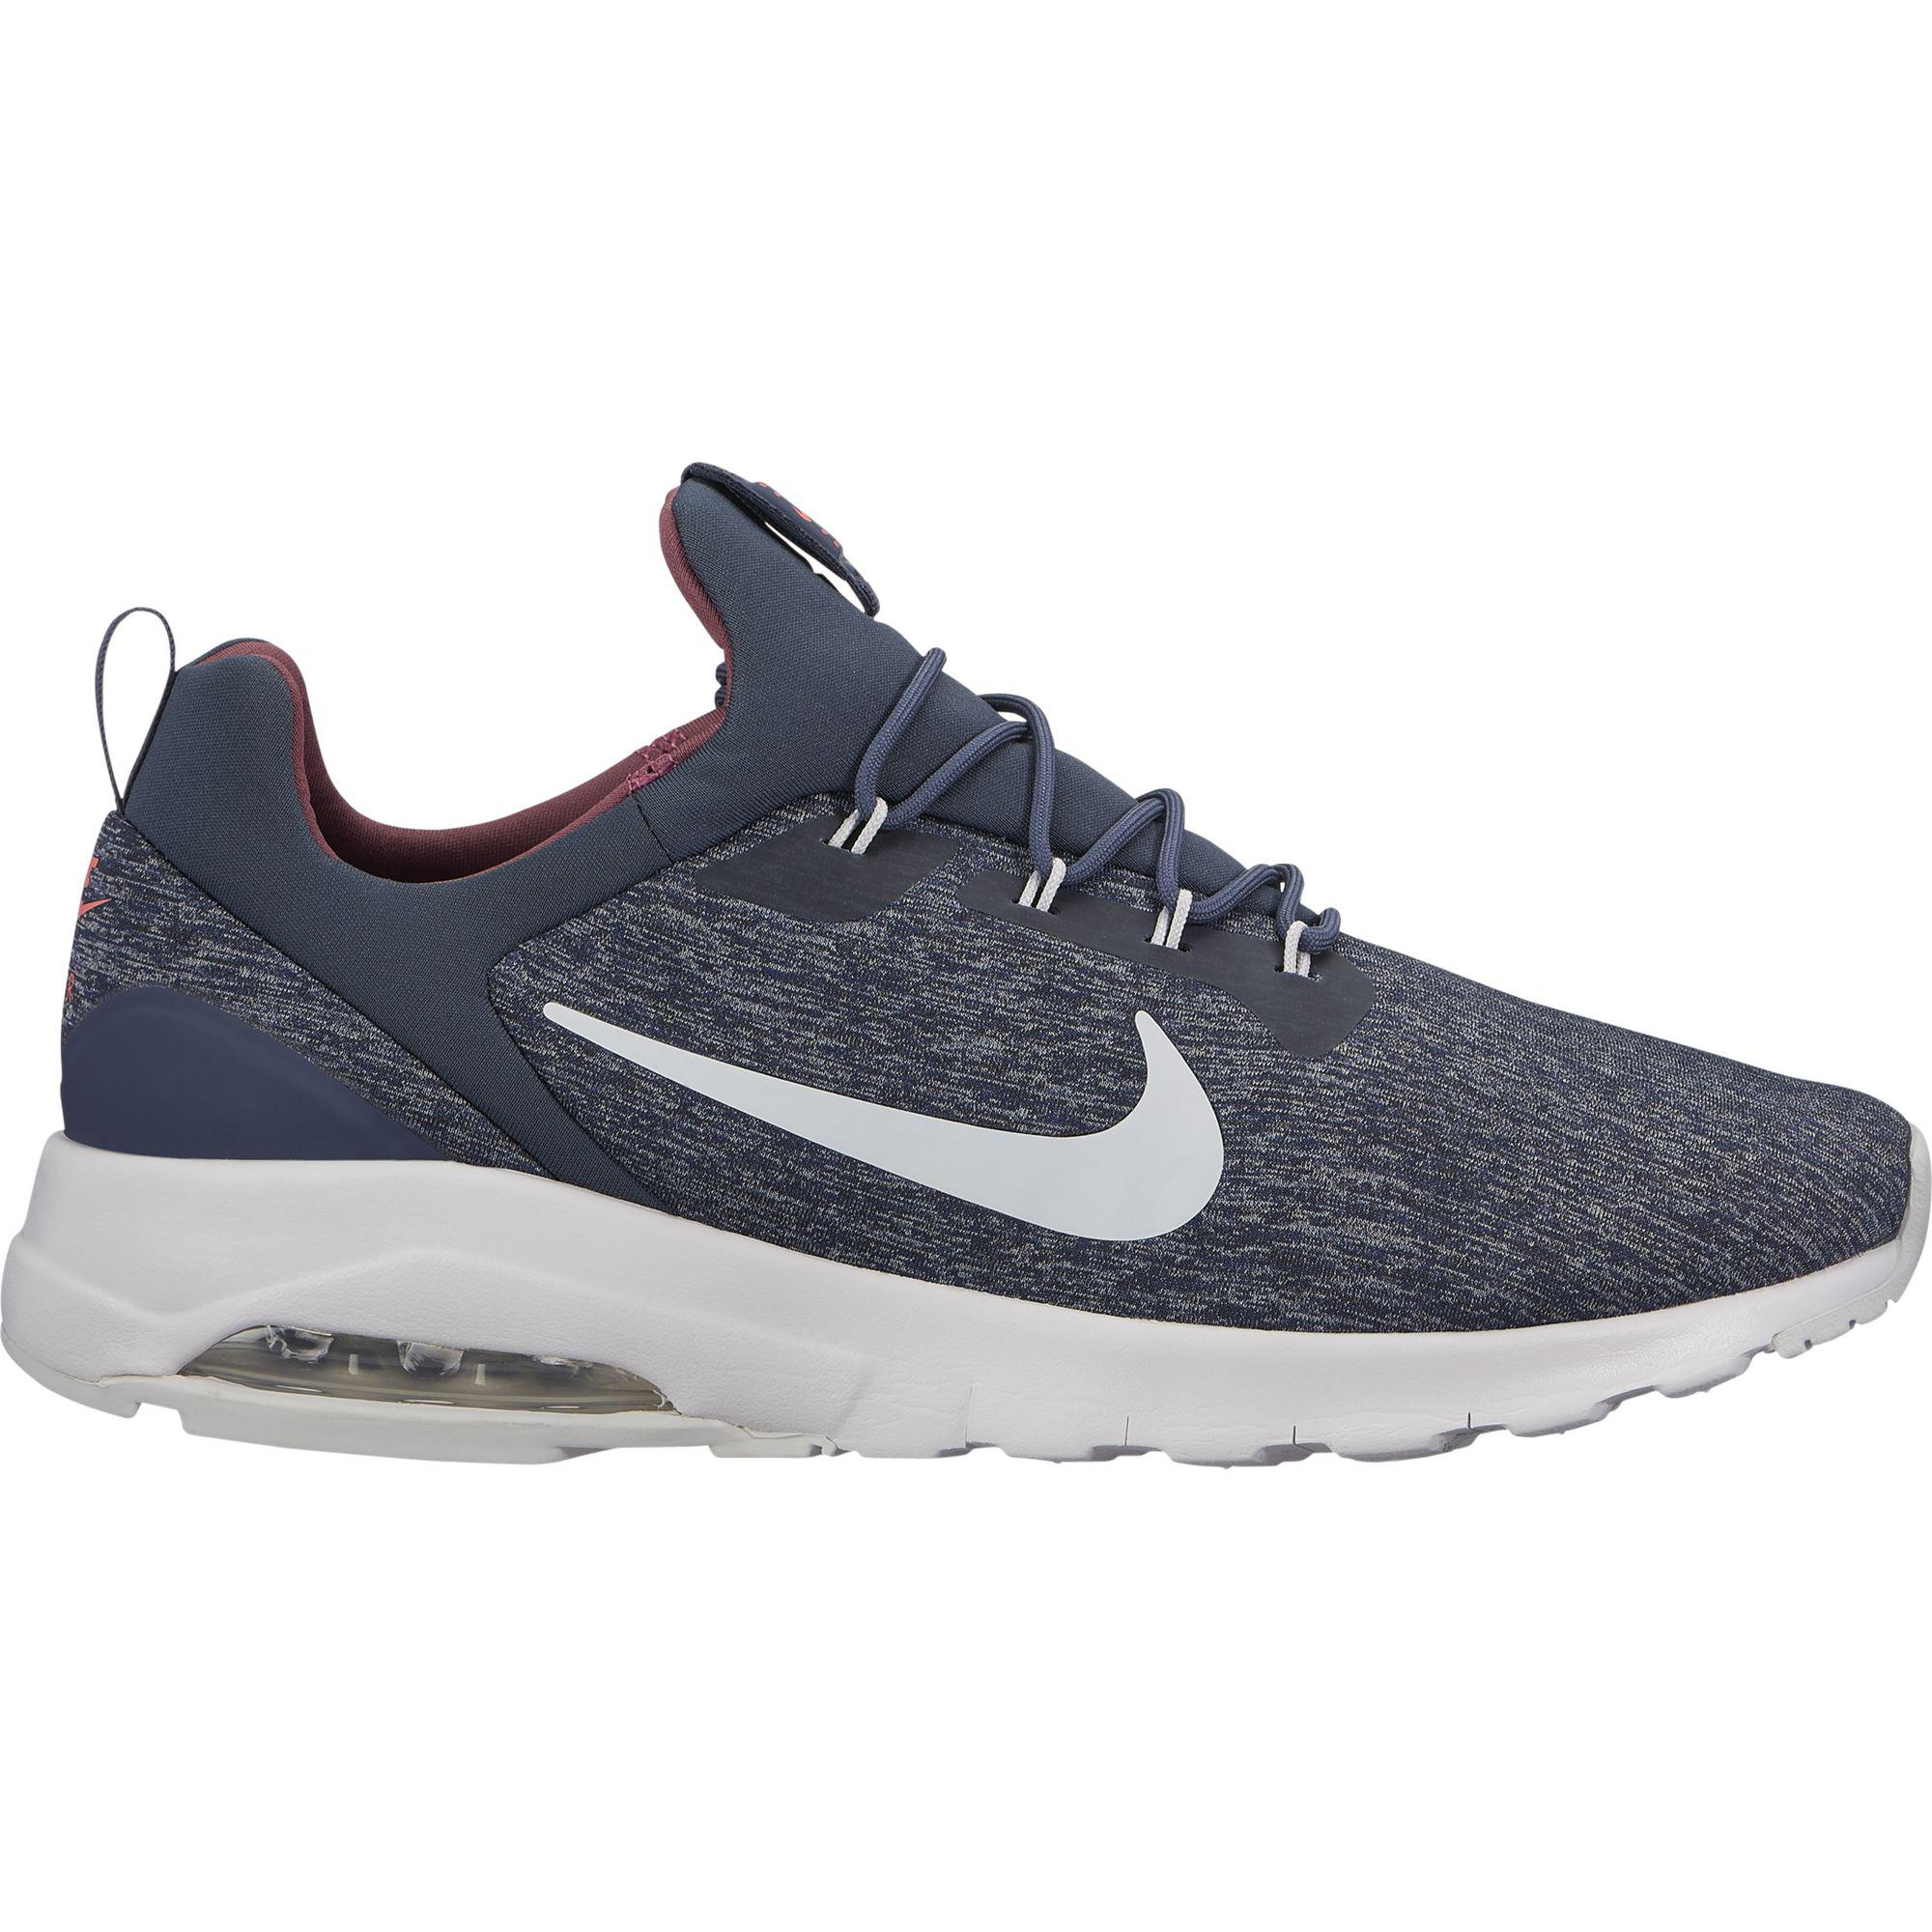 sports shoes 49c9f fe6b4 Nike Mens Air Max Motion Running Shoes - Thunder Blue Vast Grey Hot Punch -  Tennisnuts.com